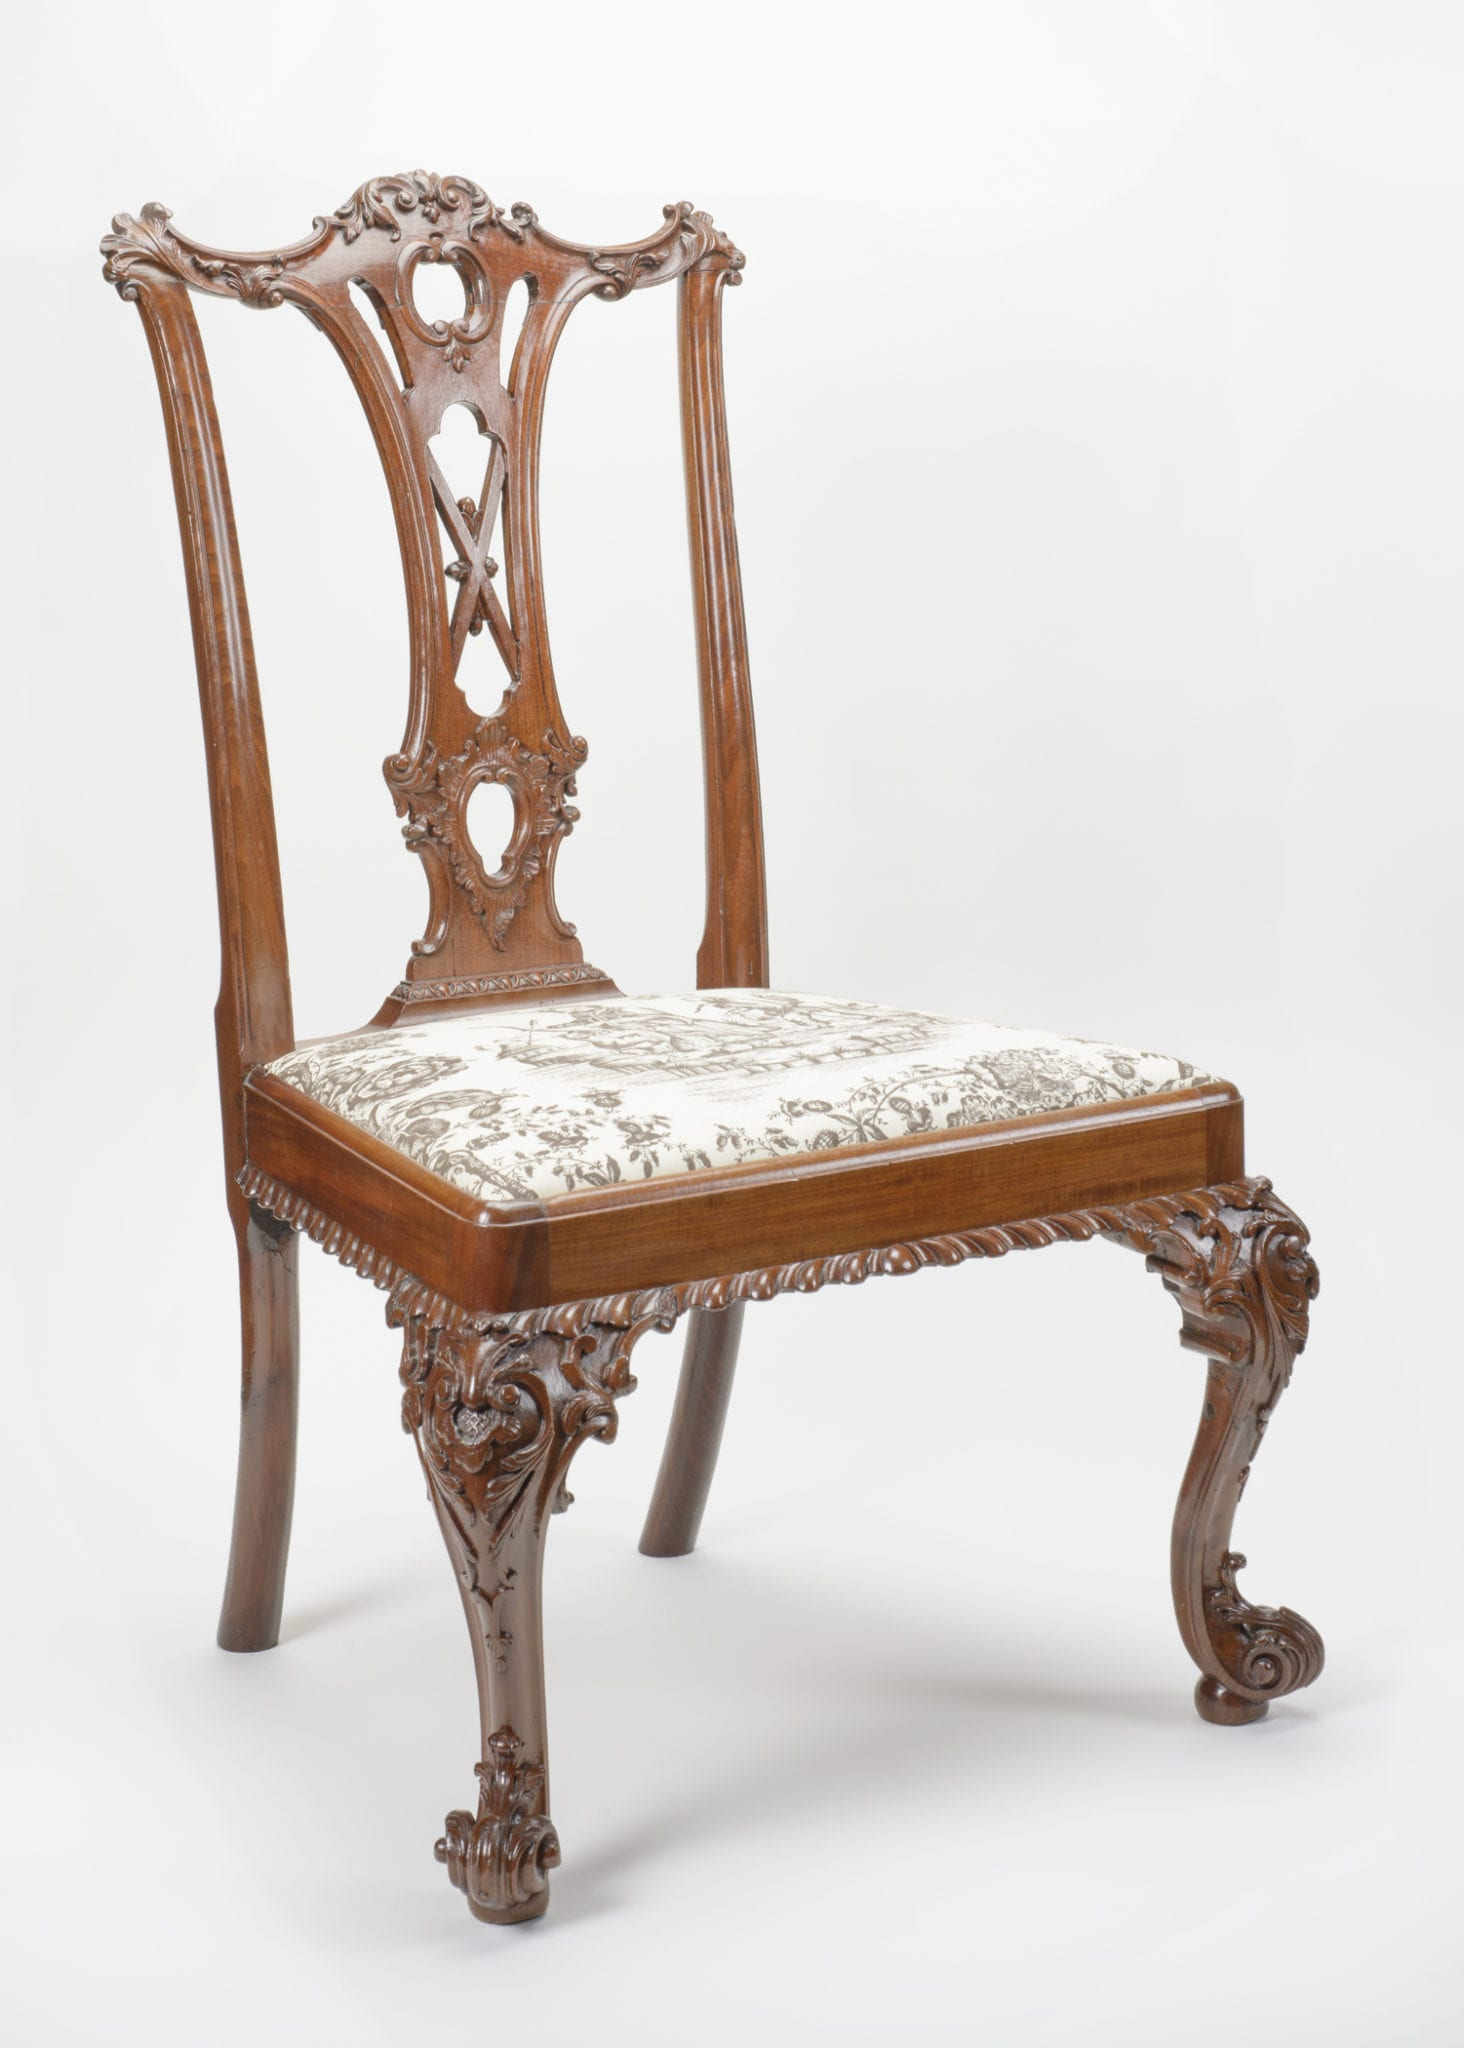 Thomas Chippendale At 300 Treasures From The Collection